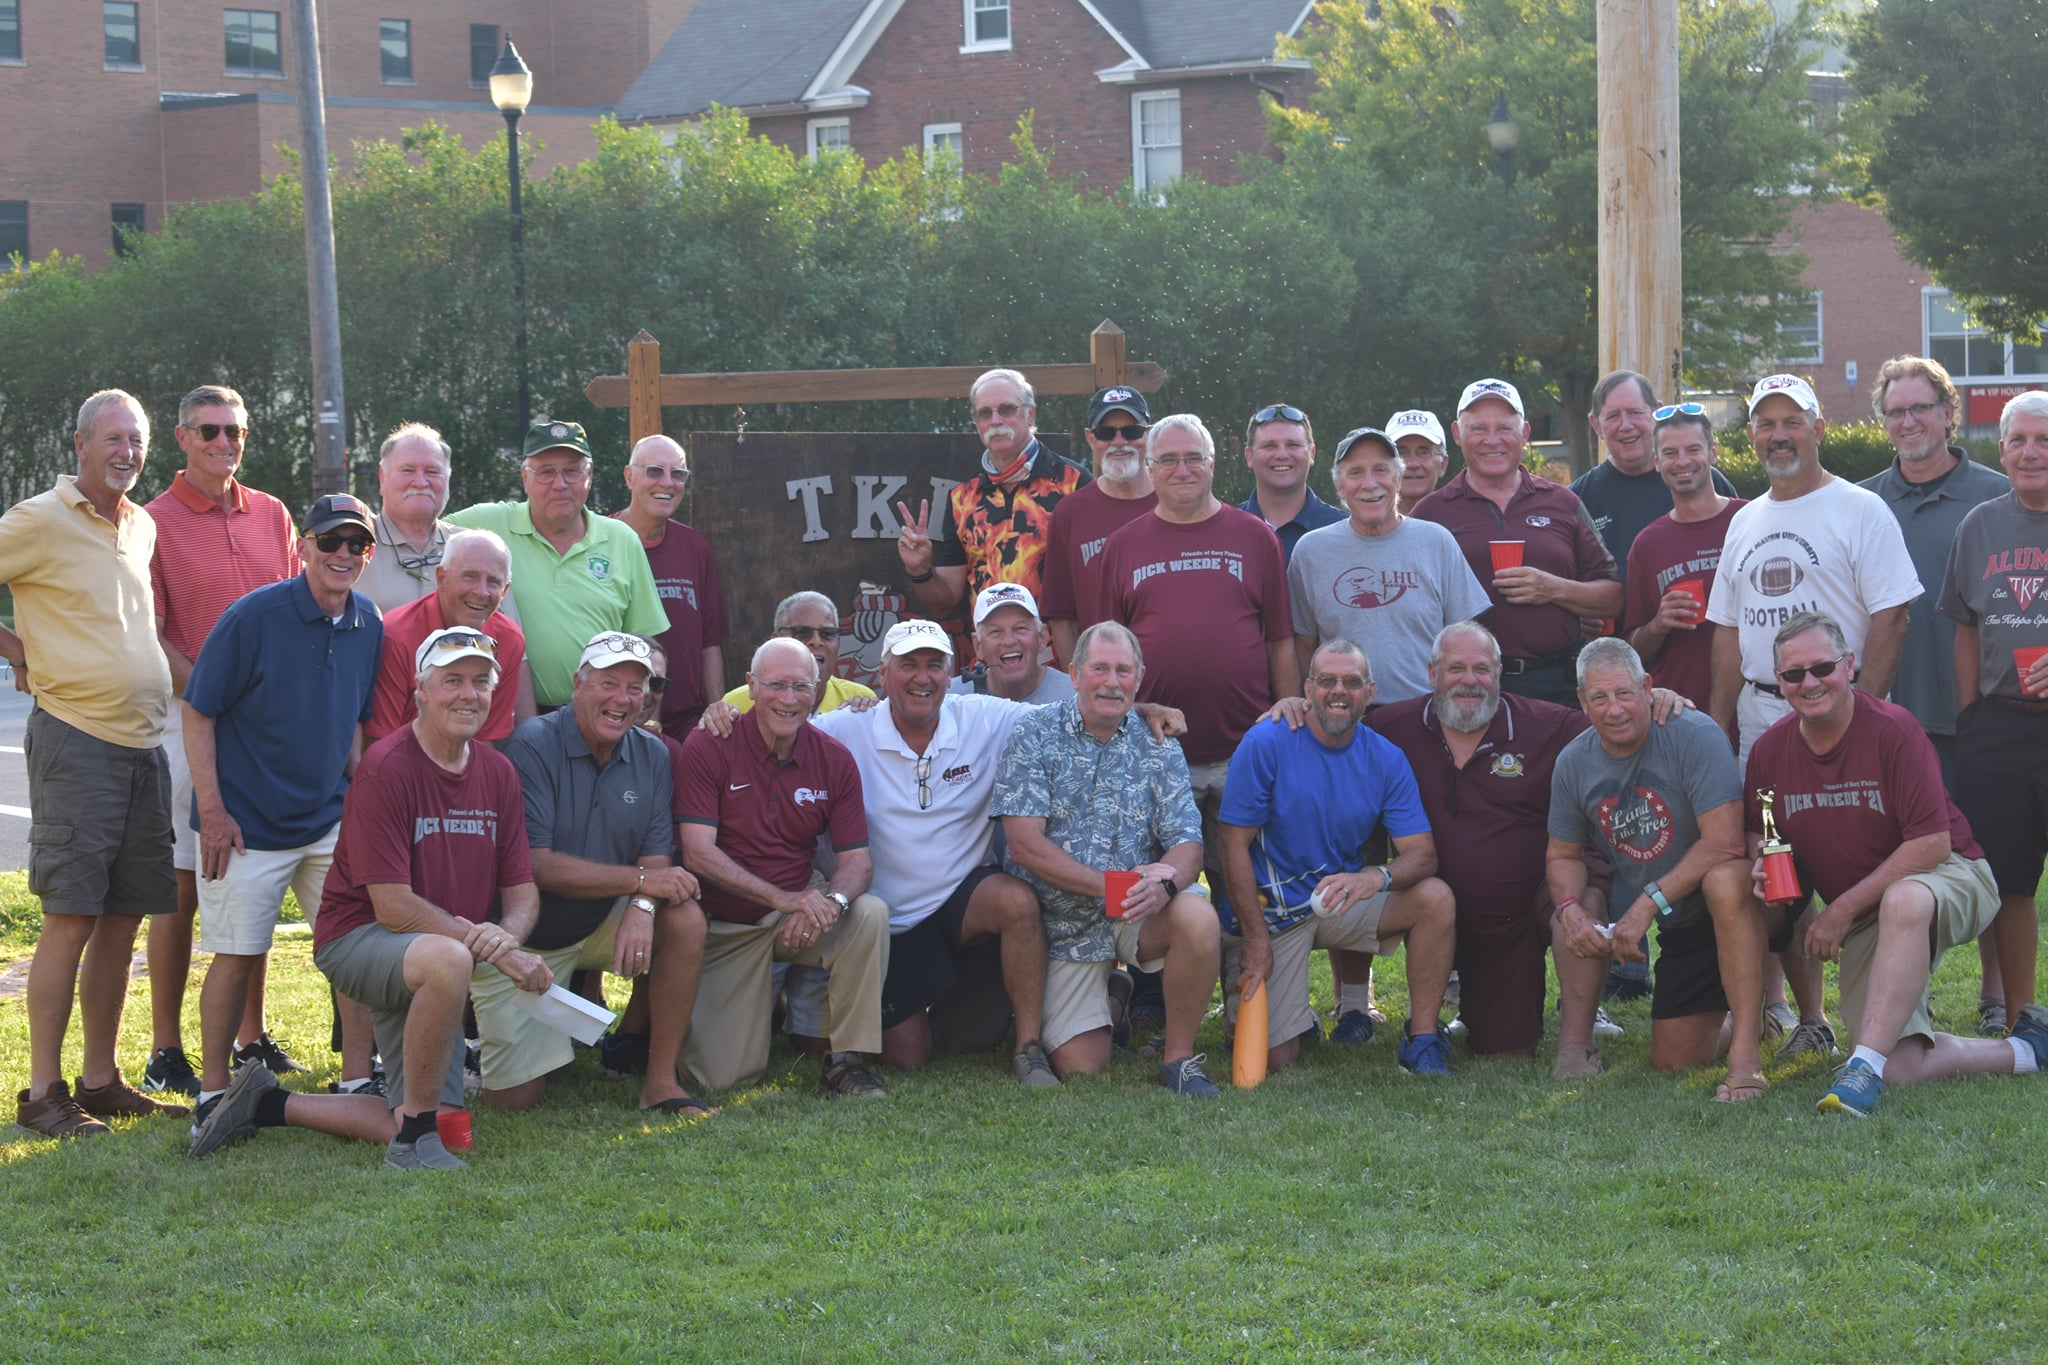 Nearly 40 Tau Kappa Epsilon (TKE) alumni who mostly graduated from Lock Haven State College in the 60s and 70s returned to The Haven from Aug. 3 to Aug. 6 for the Dick Weede Memorial Golf Tournament.